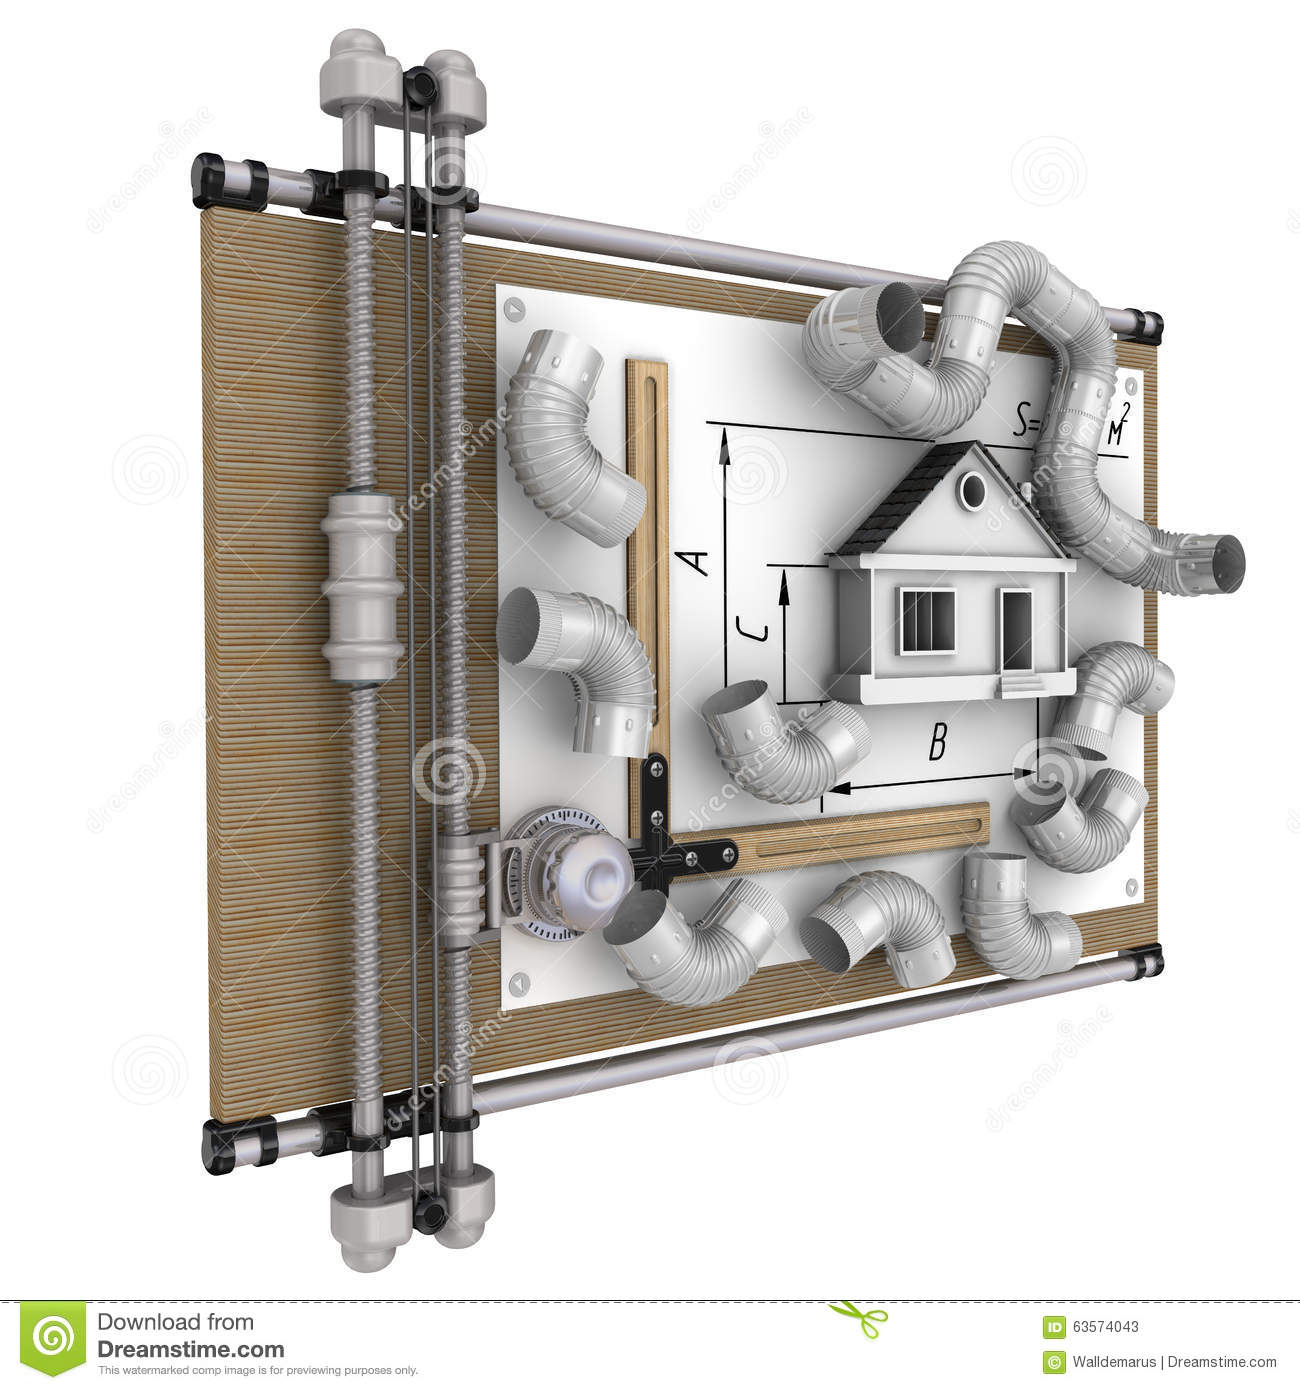 Calcul de la ventilation de la maison illustration stock for Calcul chauffage maison